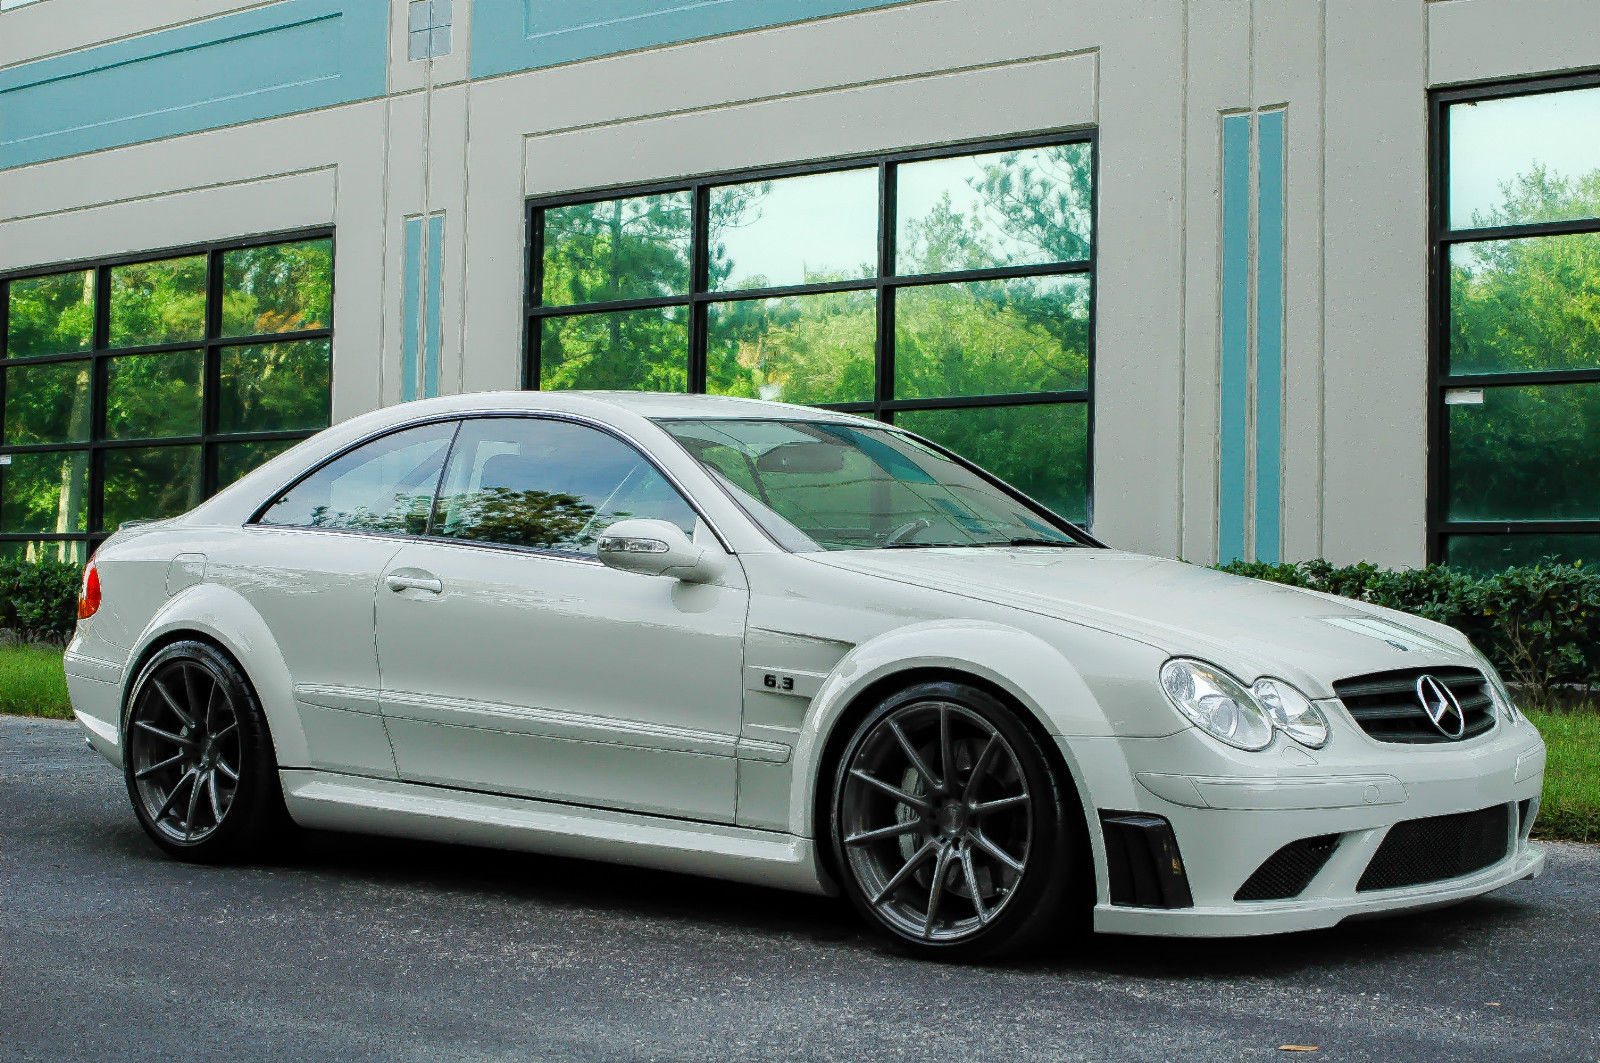 2008 mercedes clk 63 amg black series will grow some hair for Mercedes benz clk black series